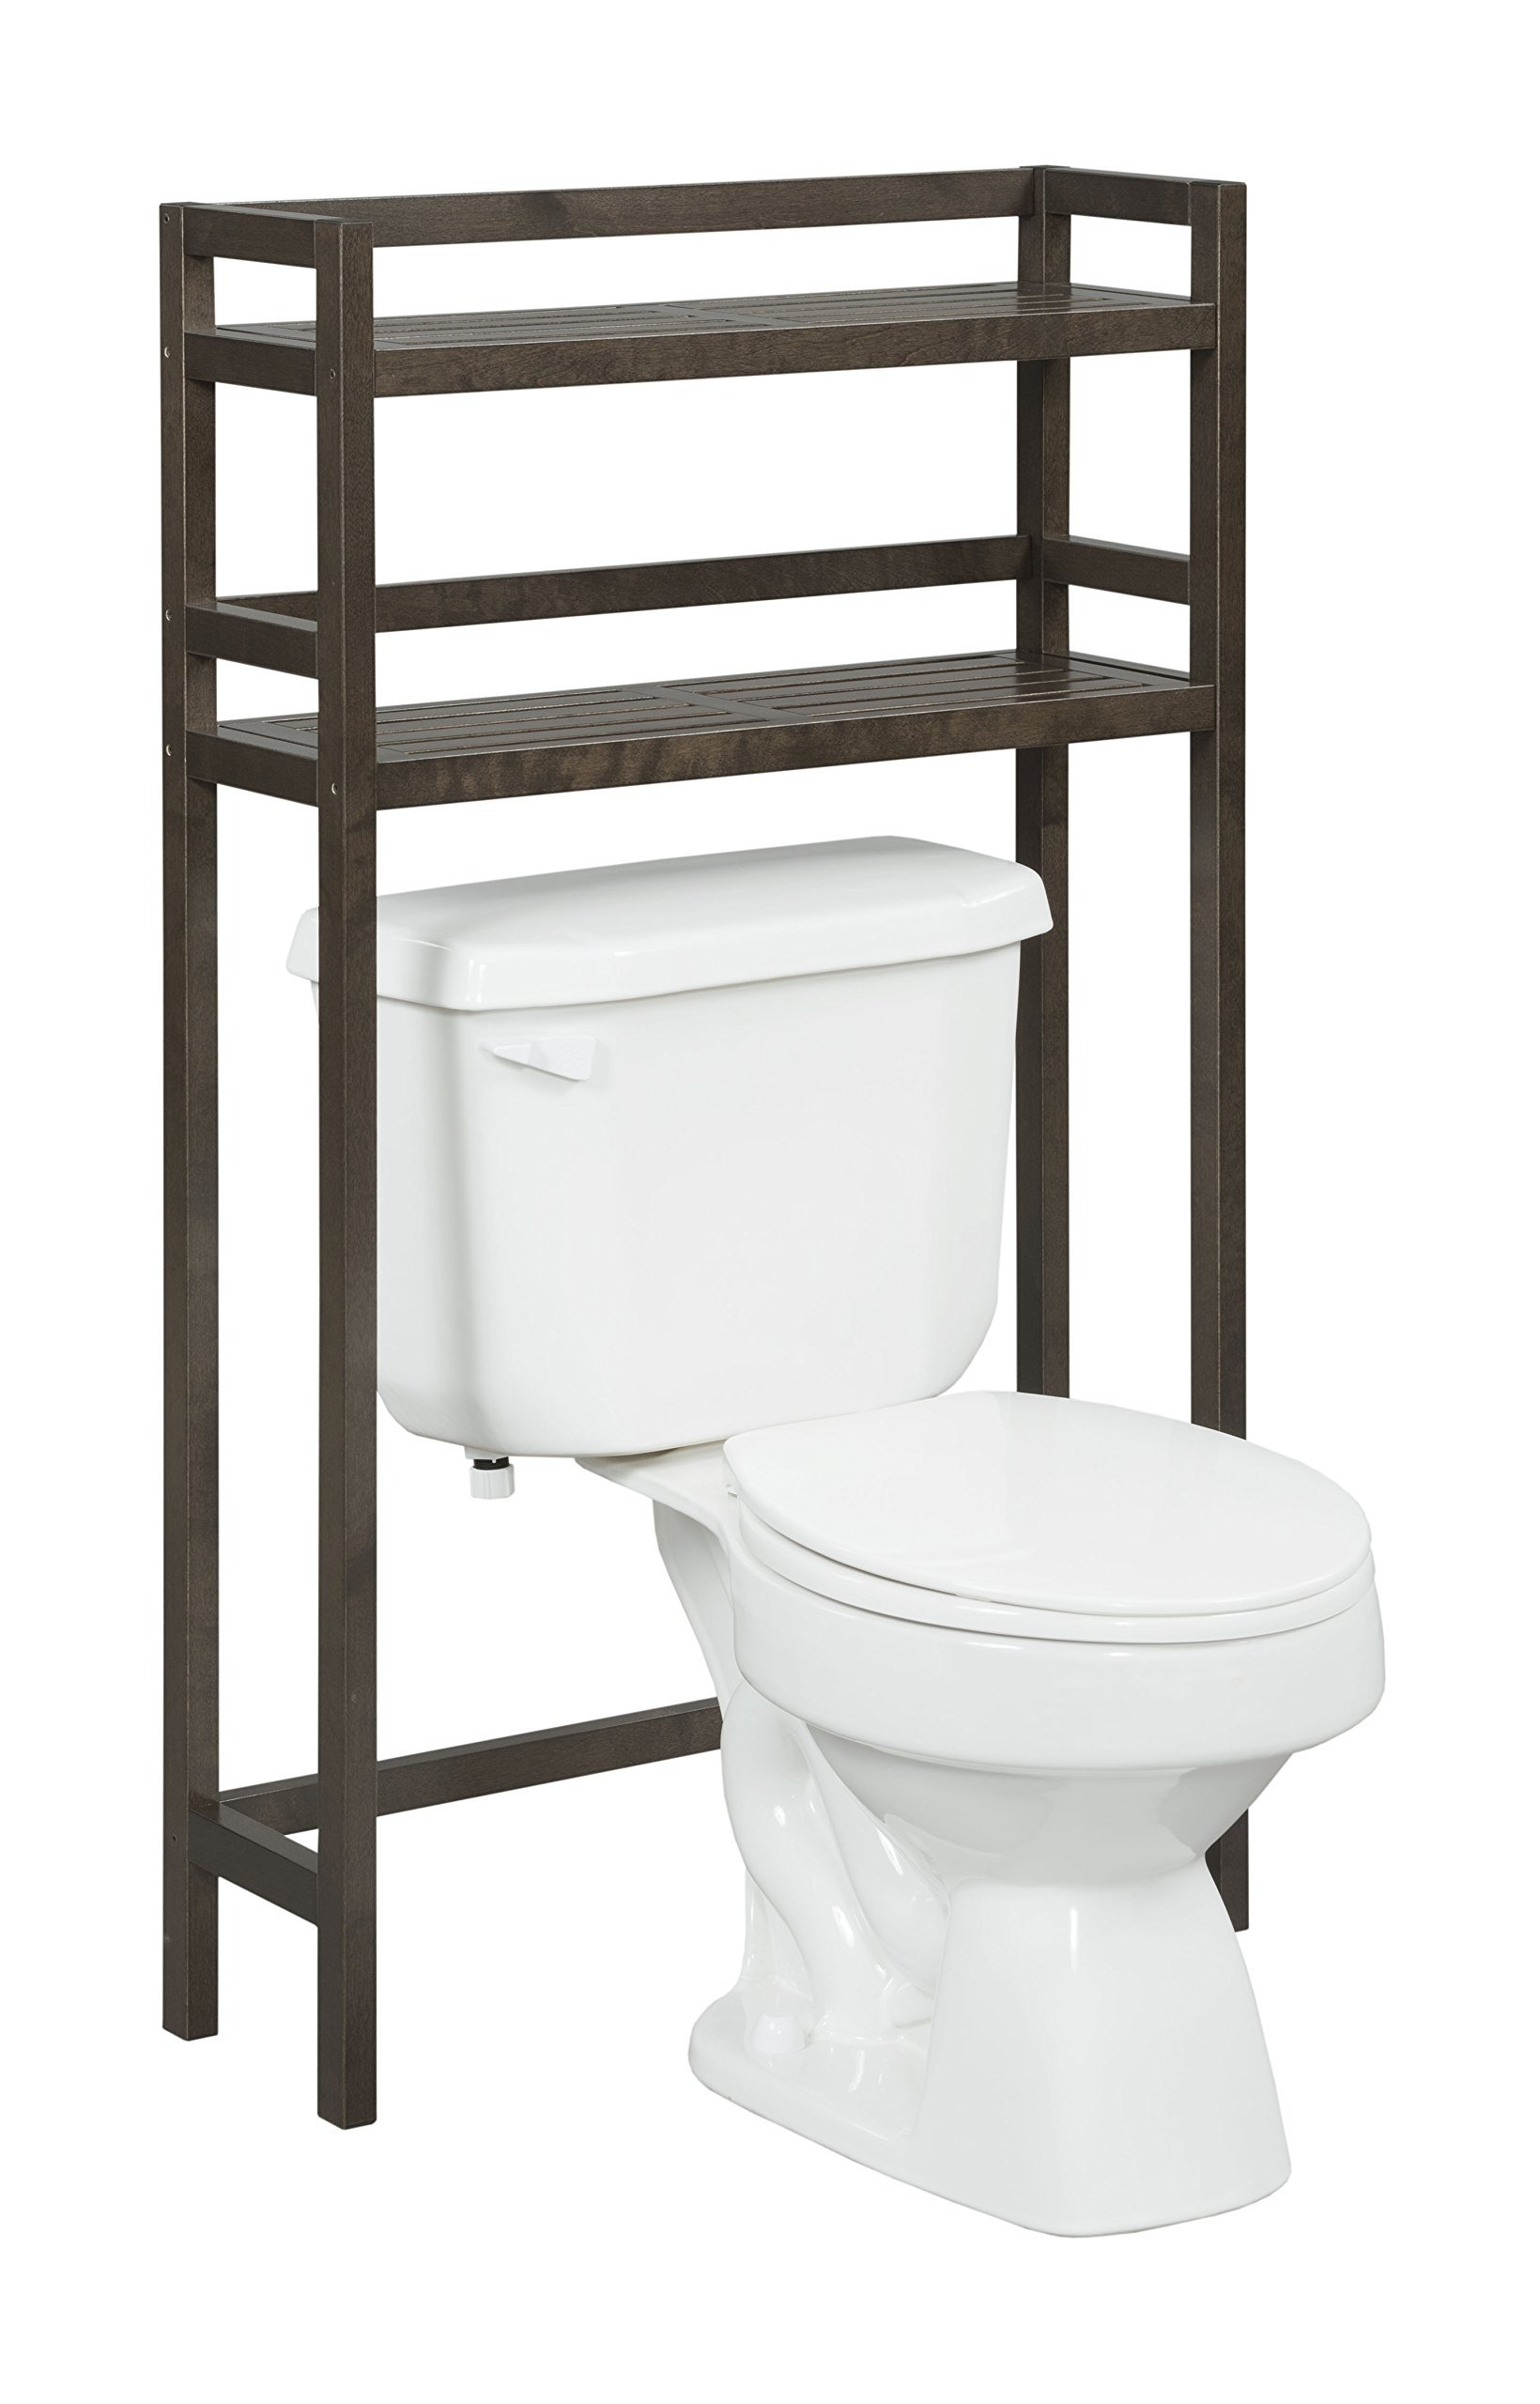 New Ridge Home Goods Dunnsville 2-Tier Space Saver with Side Storage